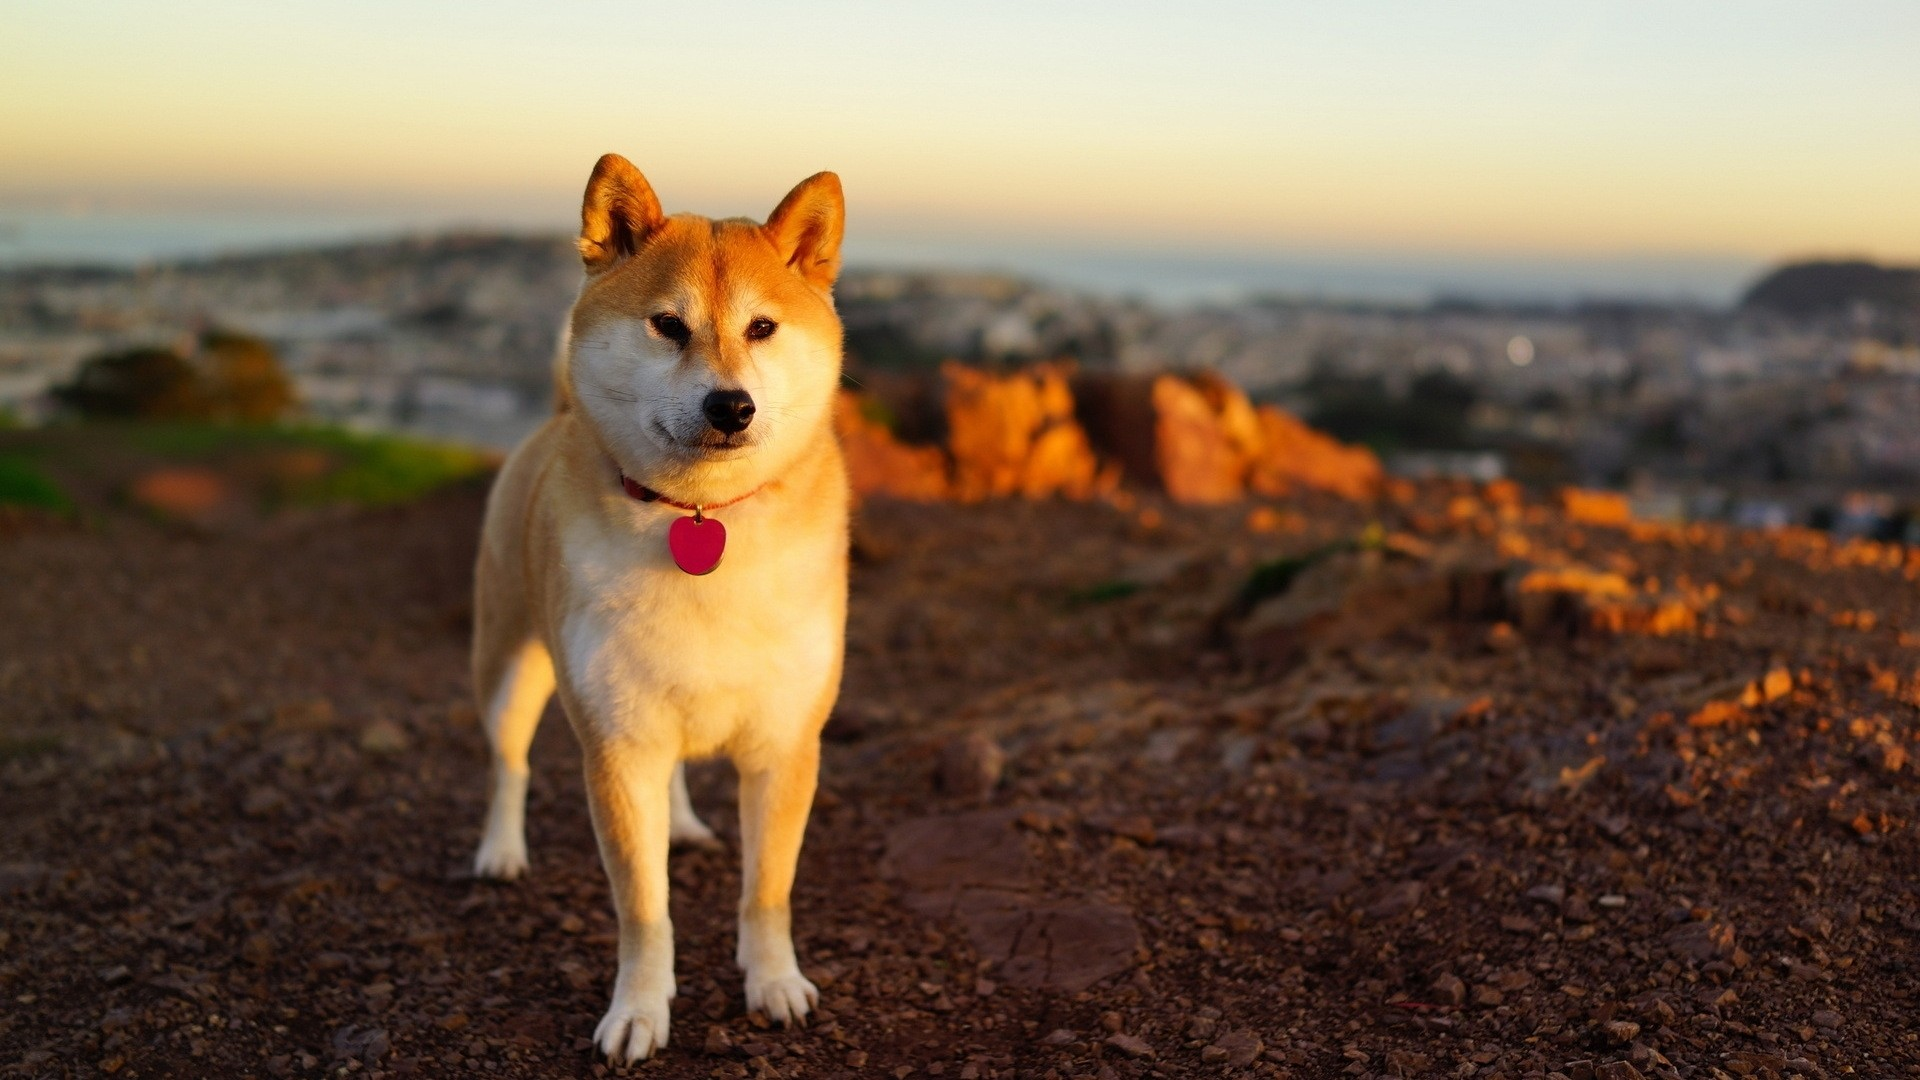 Shiba Inu Wallpaper Free Download